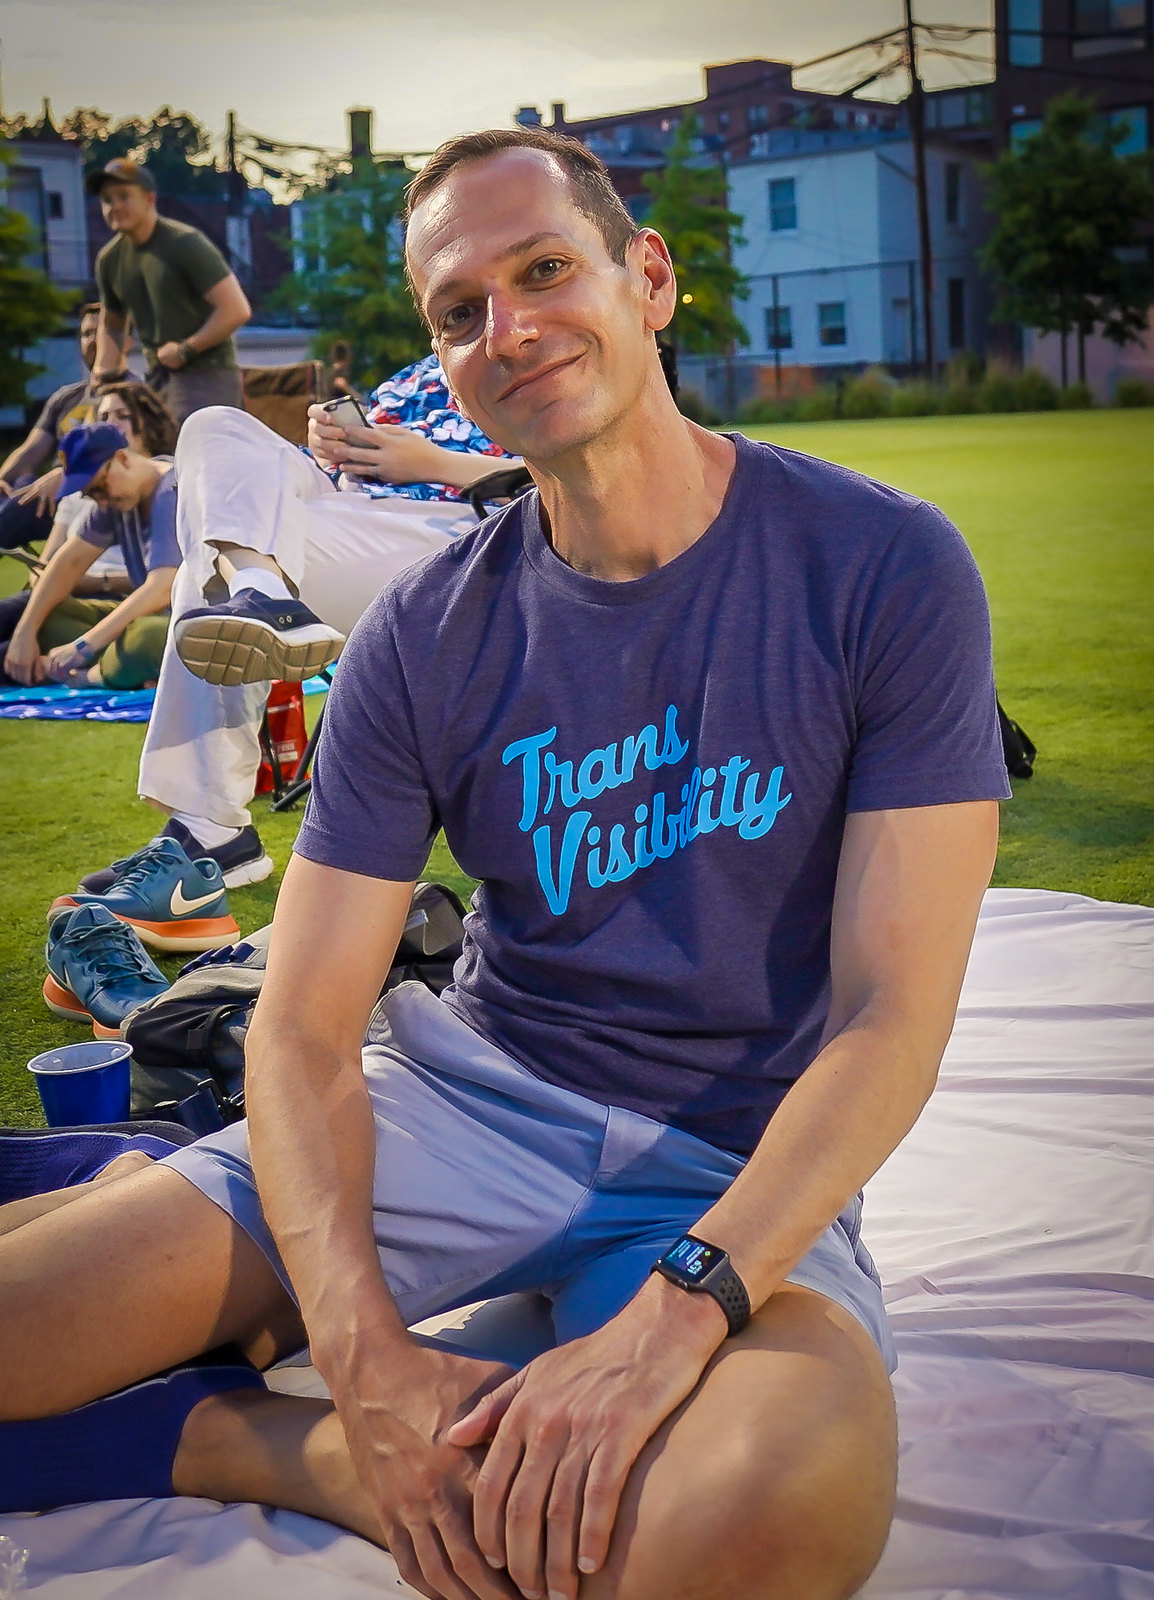 2018.05.20 Capital TransPride Movie Night, Washington, DC USA 00763